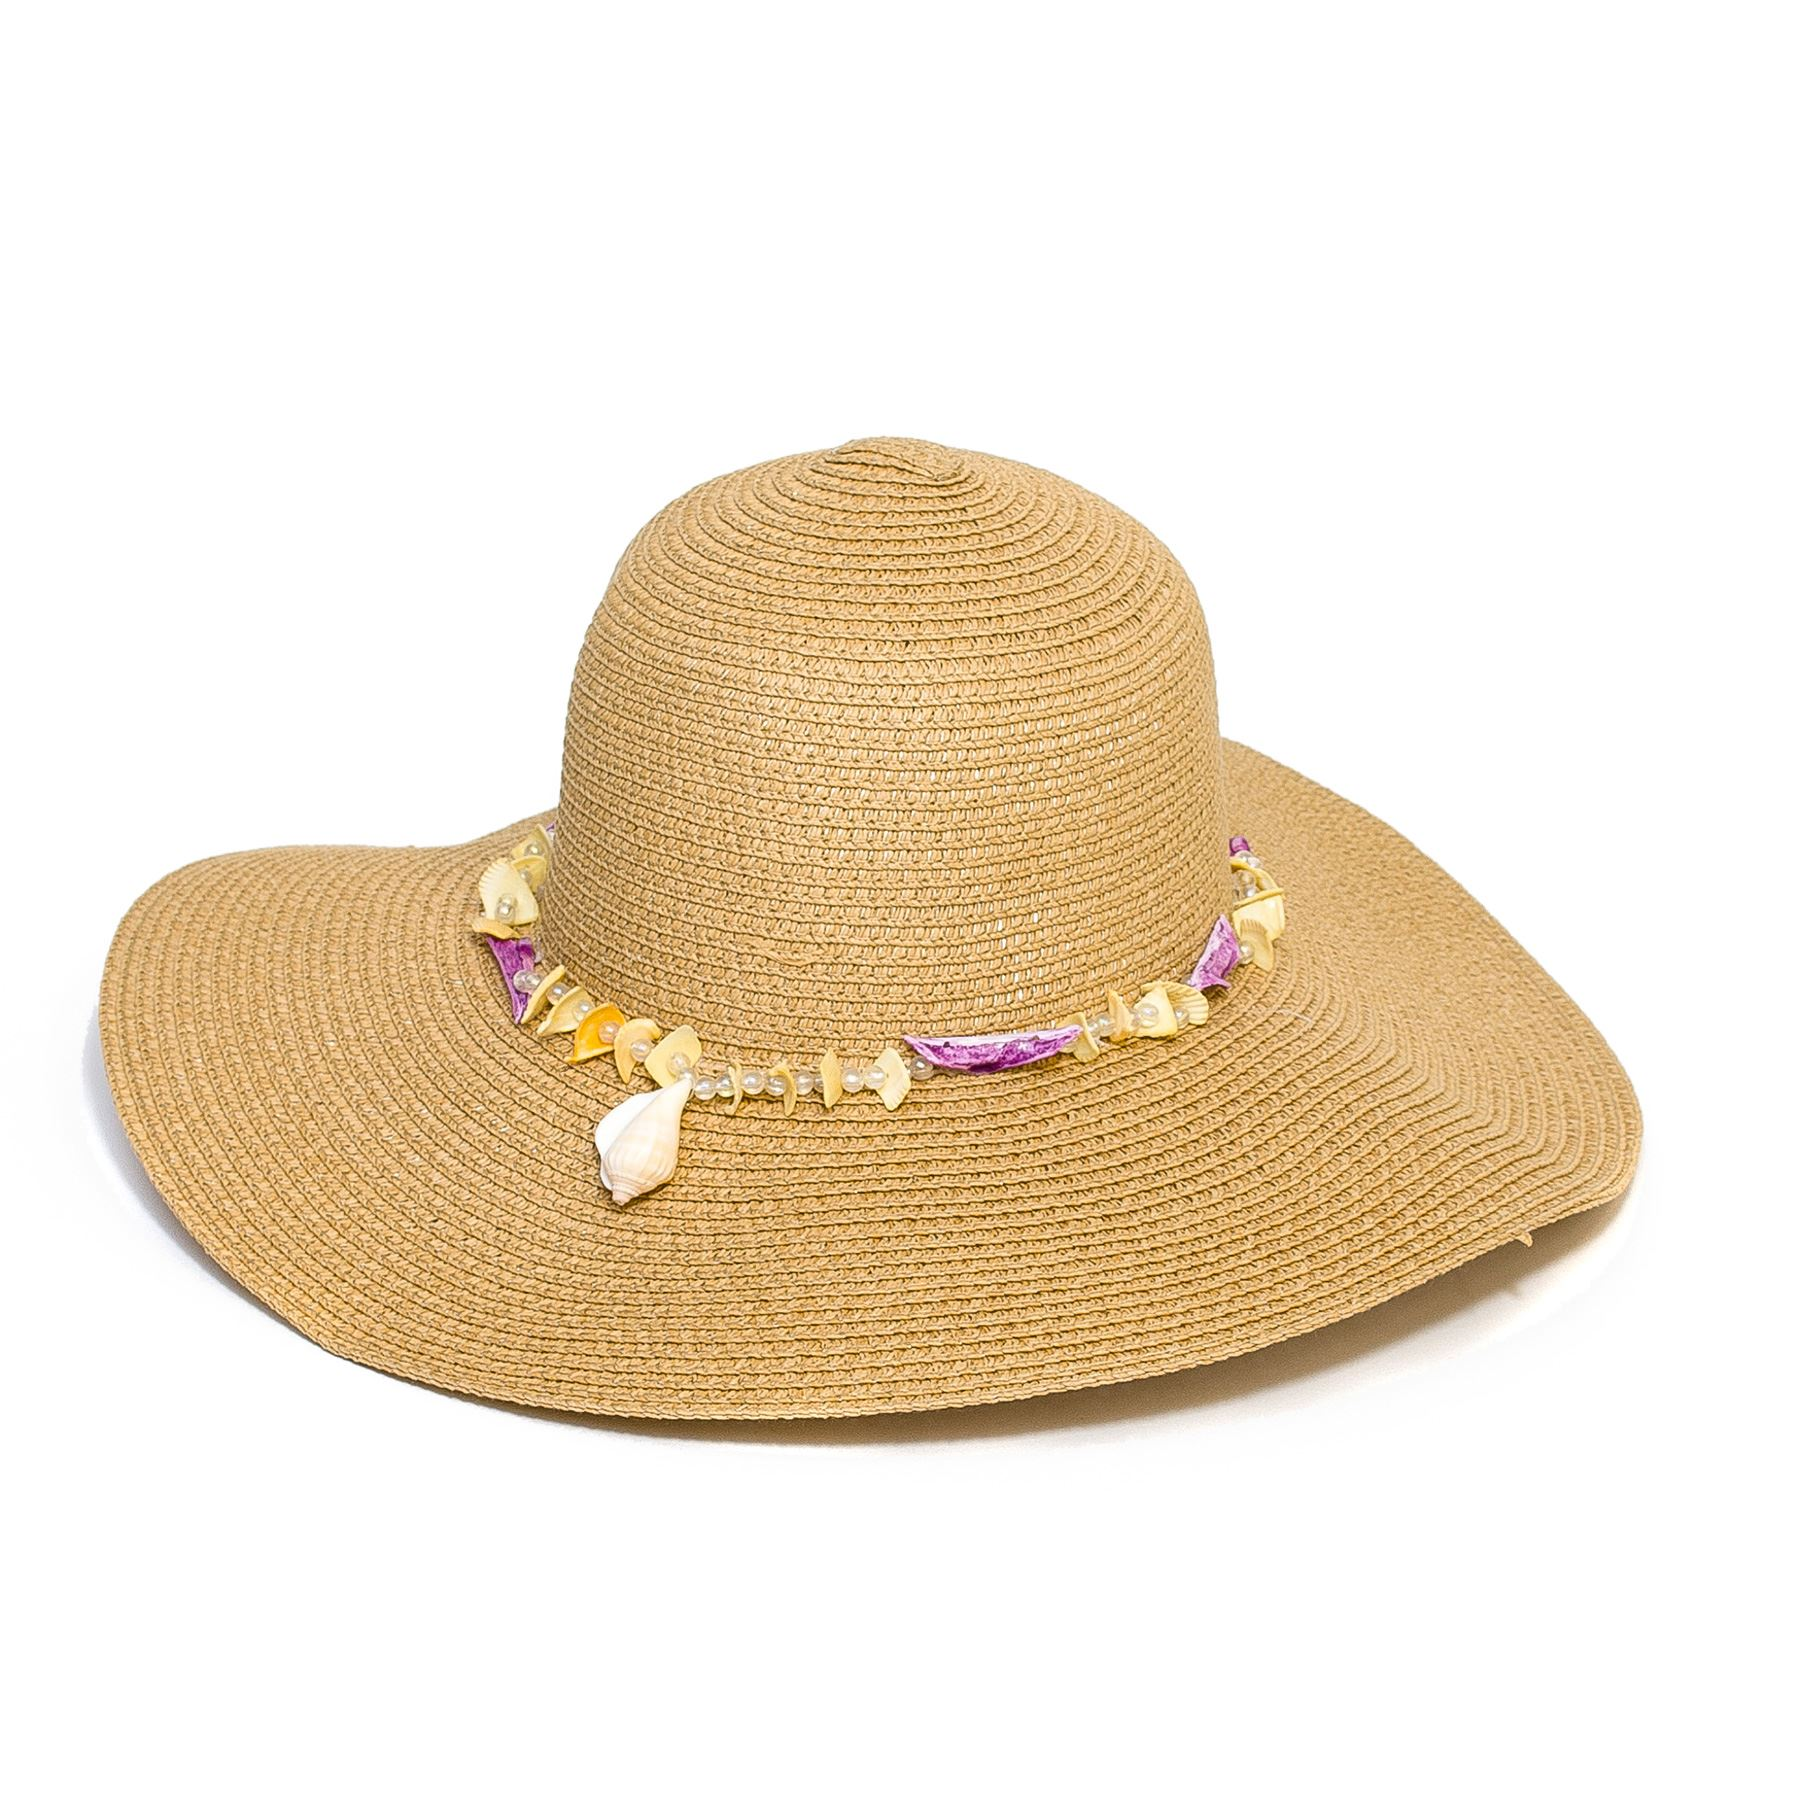 Summer Straw Style Floppy Hat with Beads and Shells | eBay